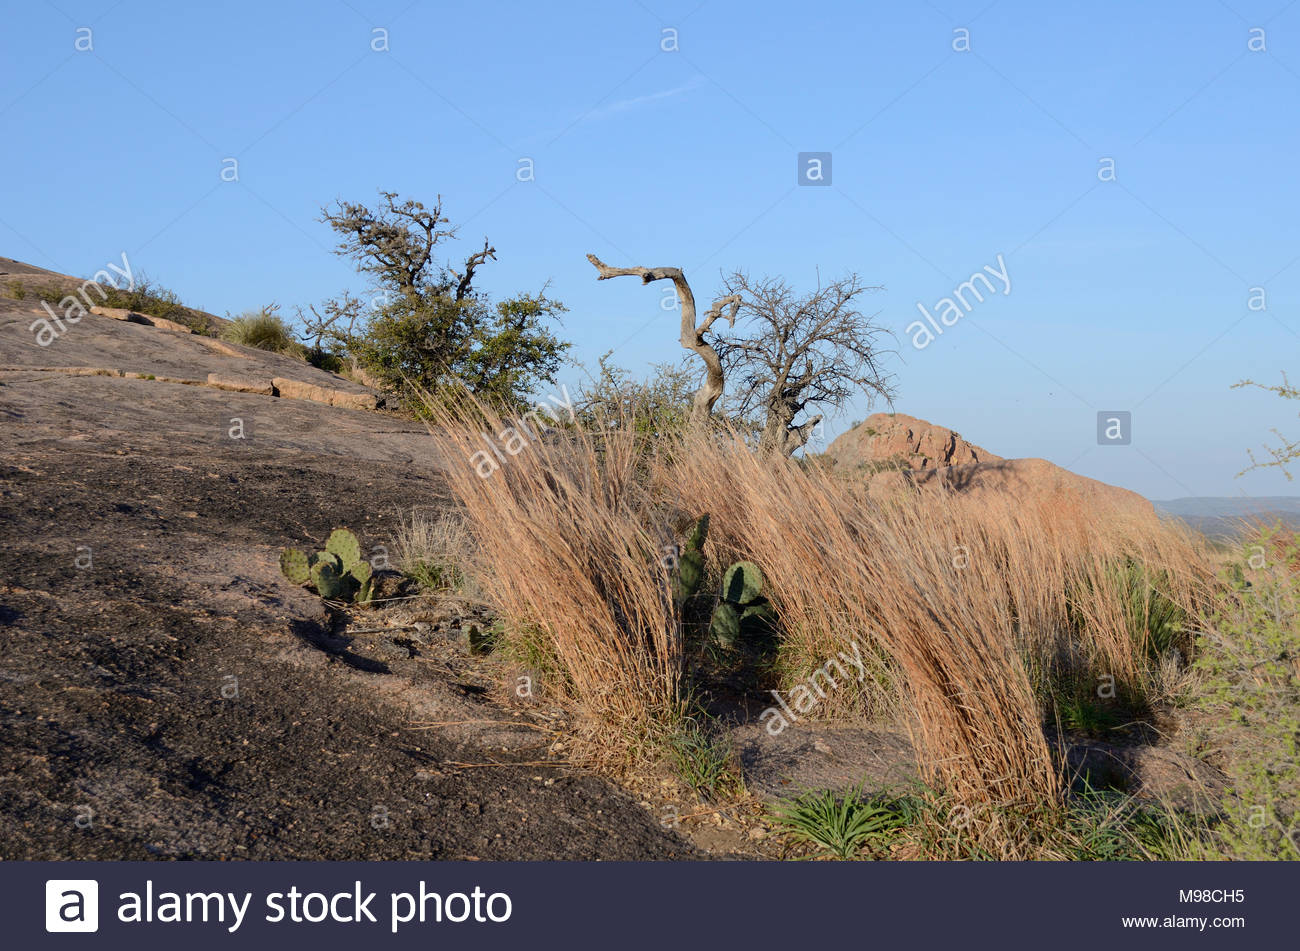 Enchanted Rock Landscape. Trees and dead grass, Enchanted Rock in the Texas Hill Country. Granite dome near Fredericksburg and Llano in Central Texas. - Stock Image